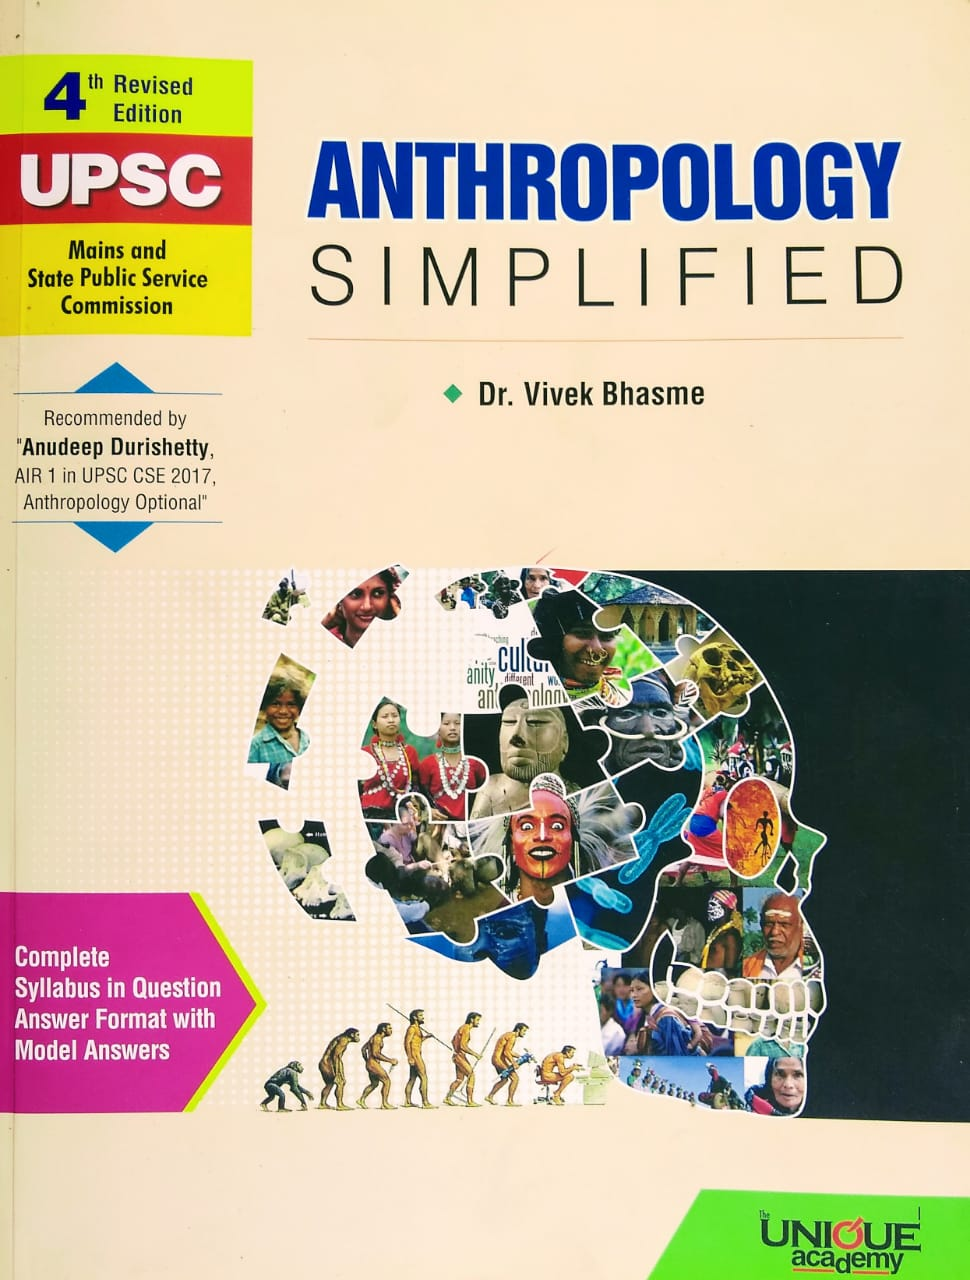 UPSC ANTHROPOLOGY SIMPLIFIED